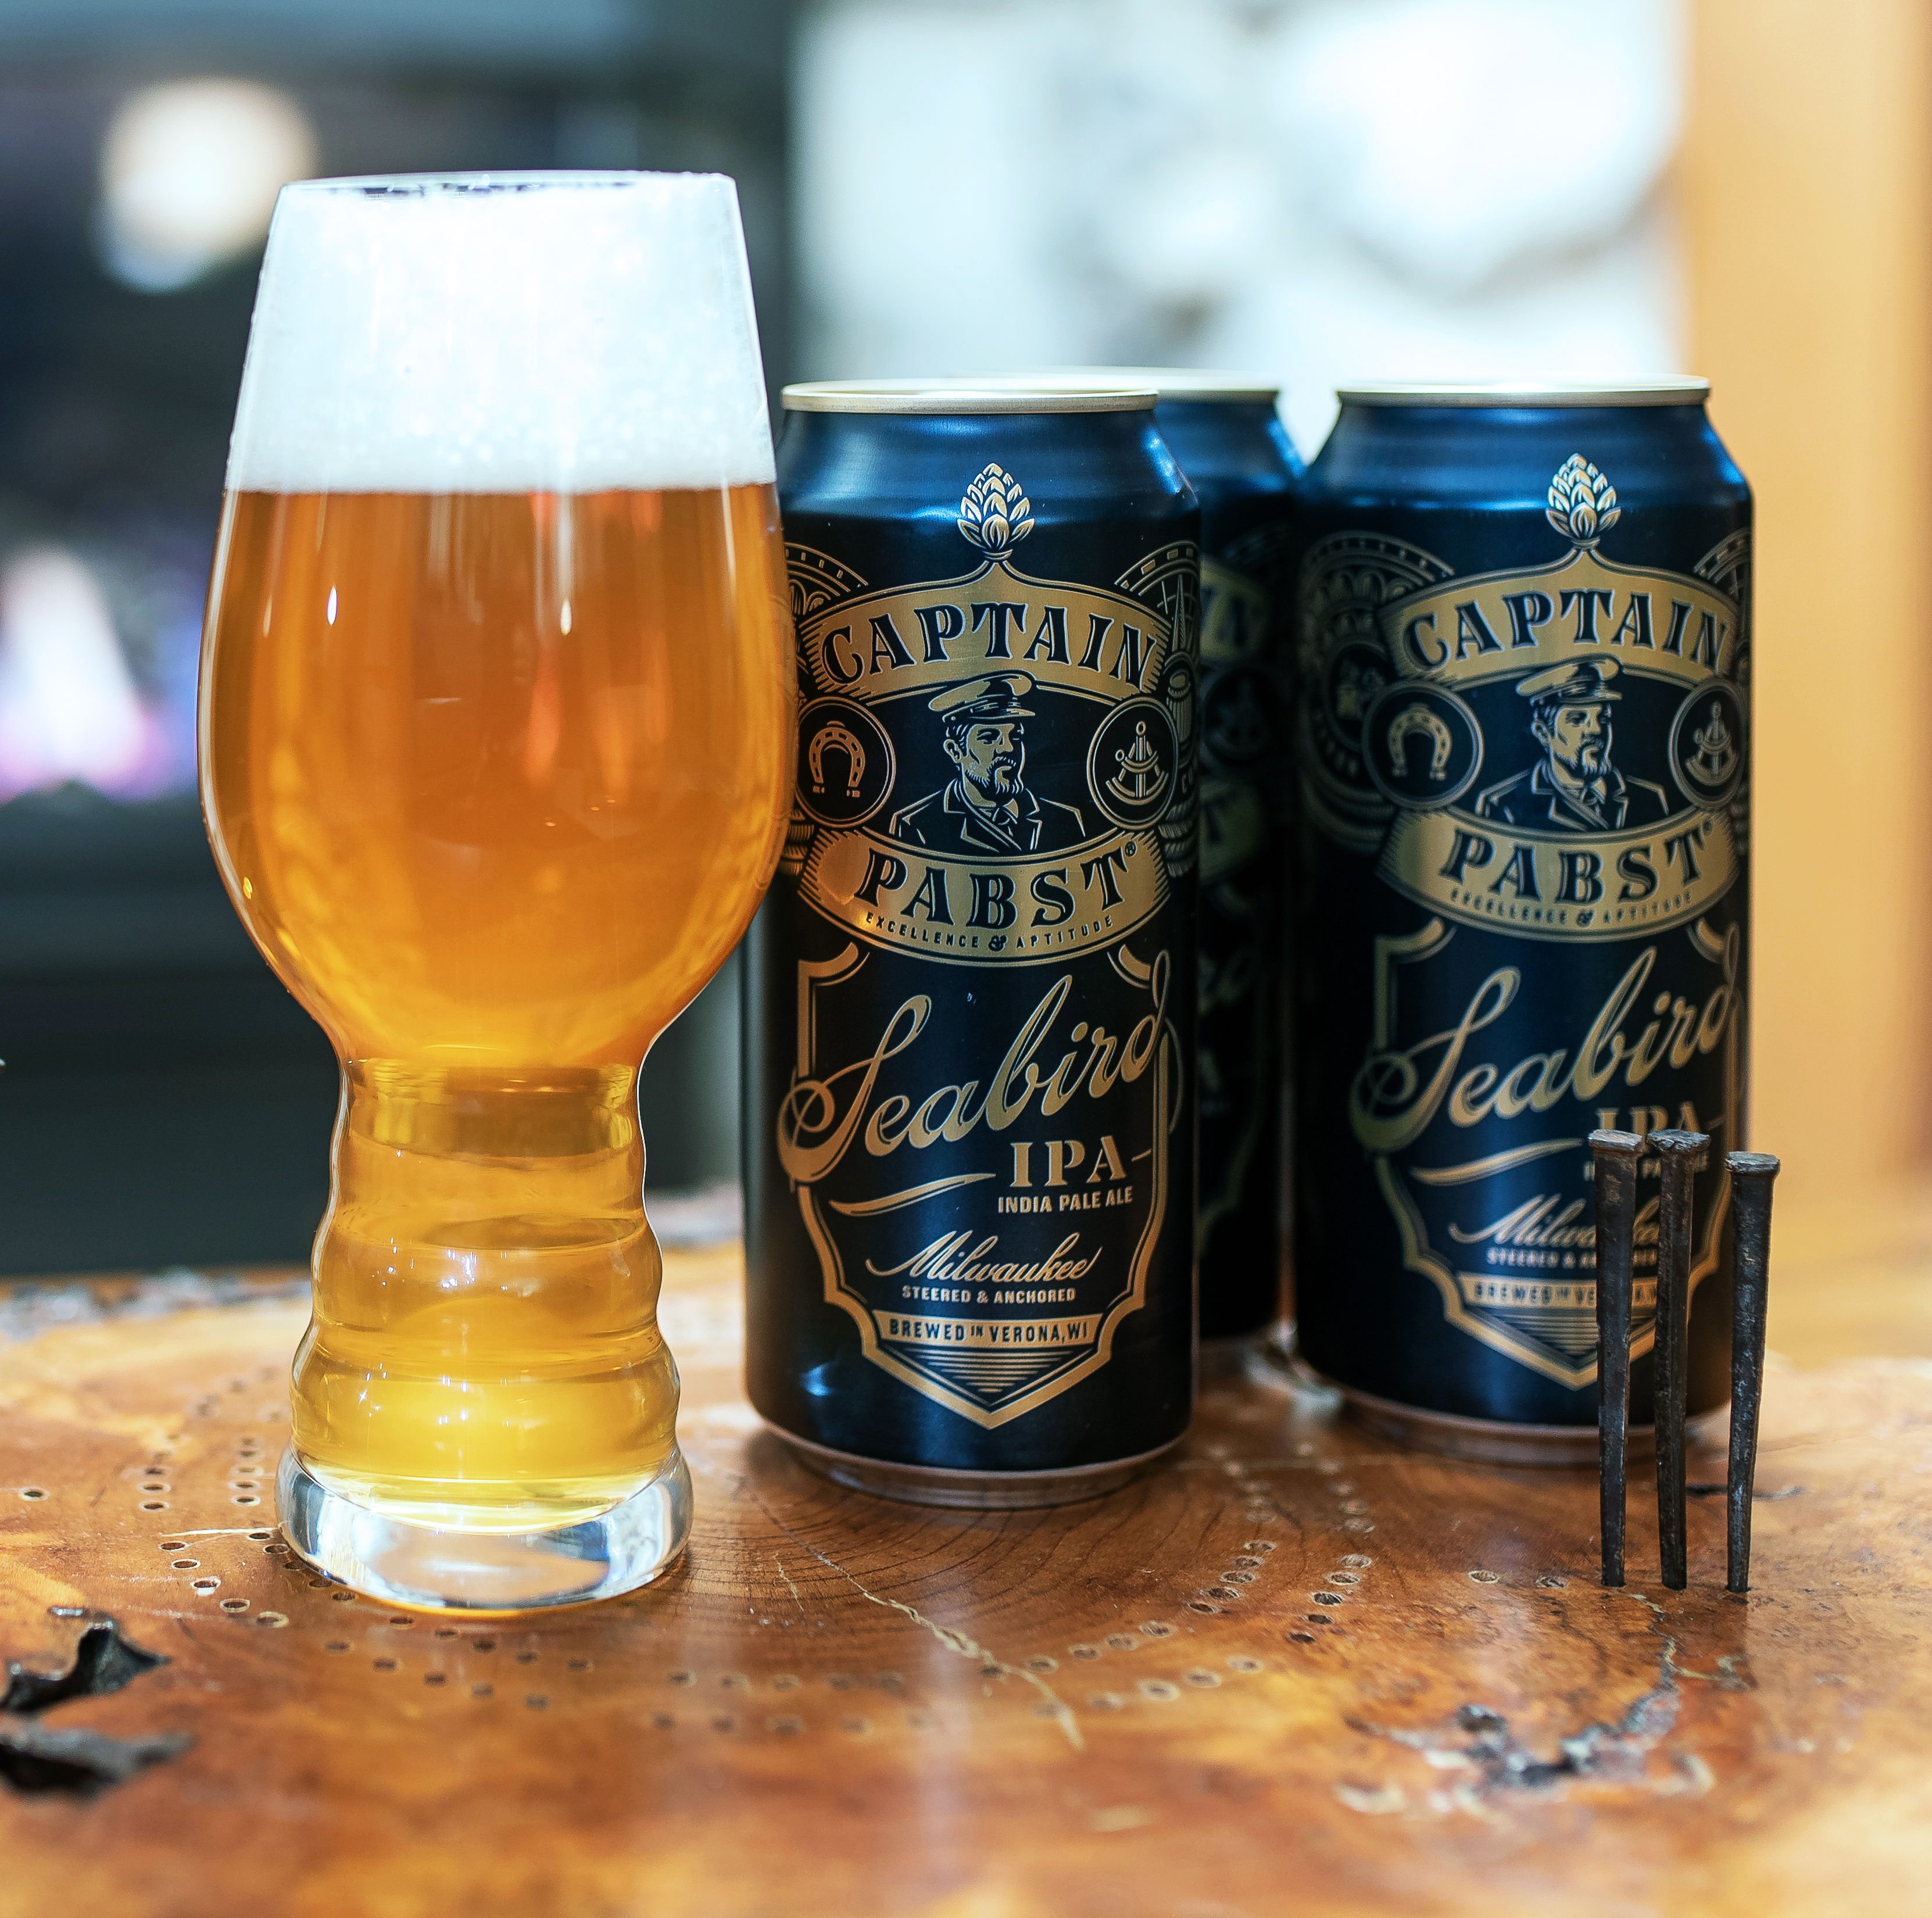 image of Captain Frederick Pabst Seabird IPA courtesy of Pabst Brewing